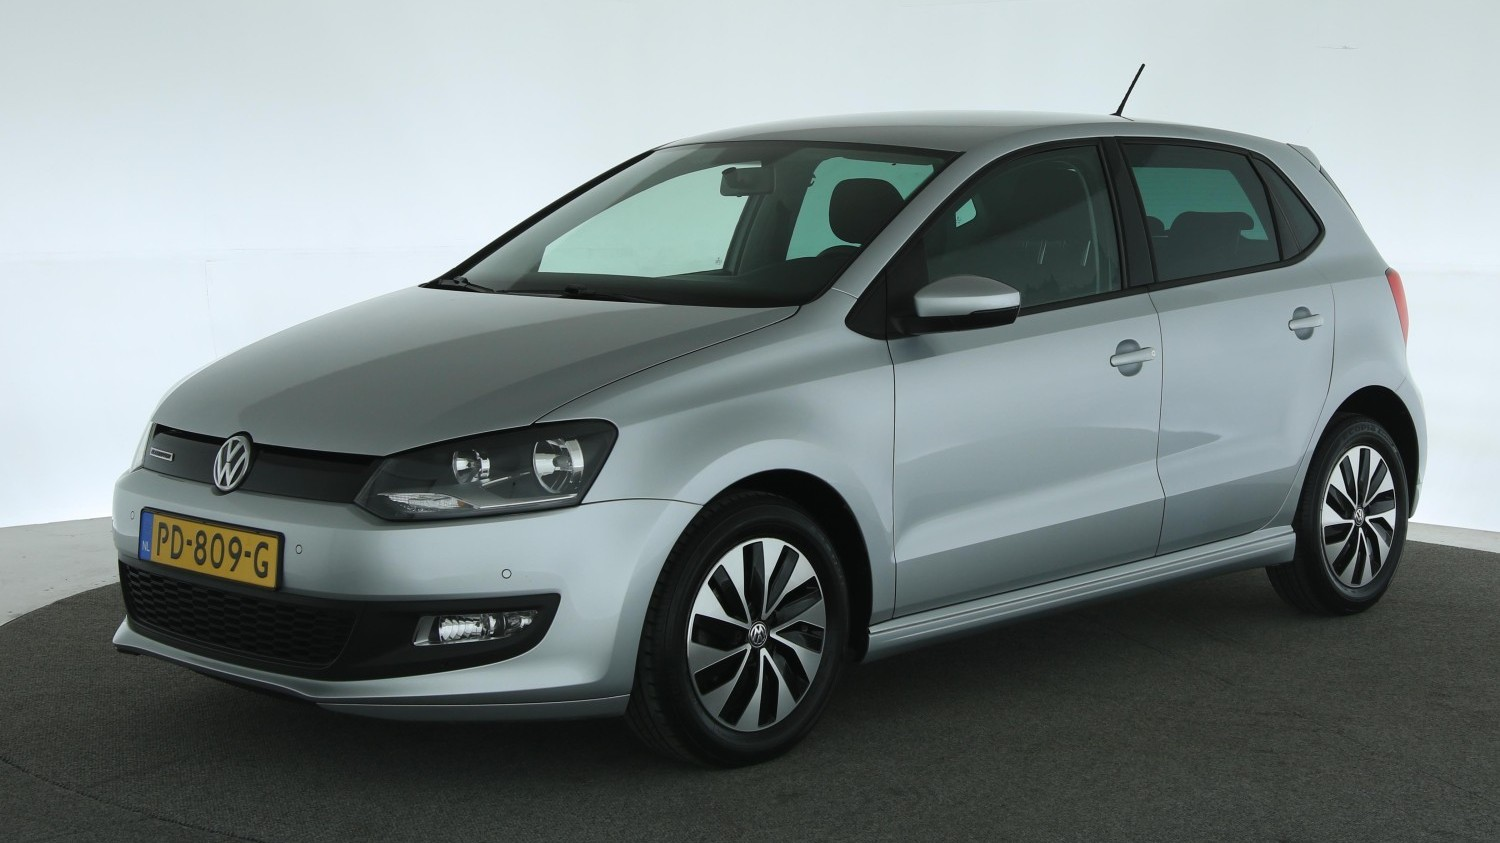 Volkswagen Polo Hatchback 2017 PD-809-G 1